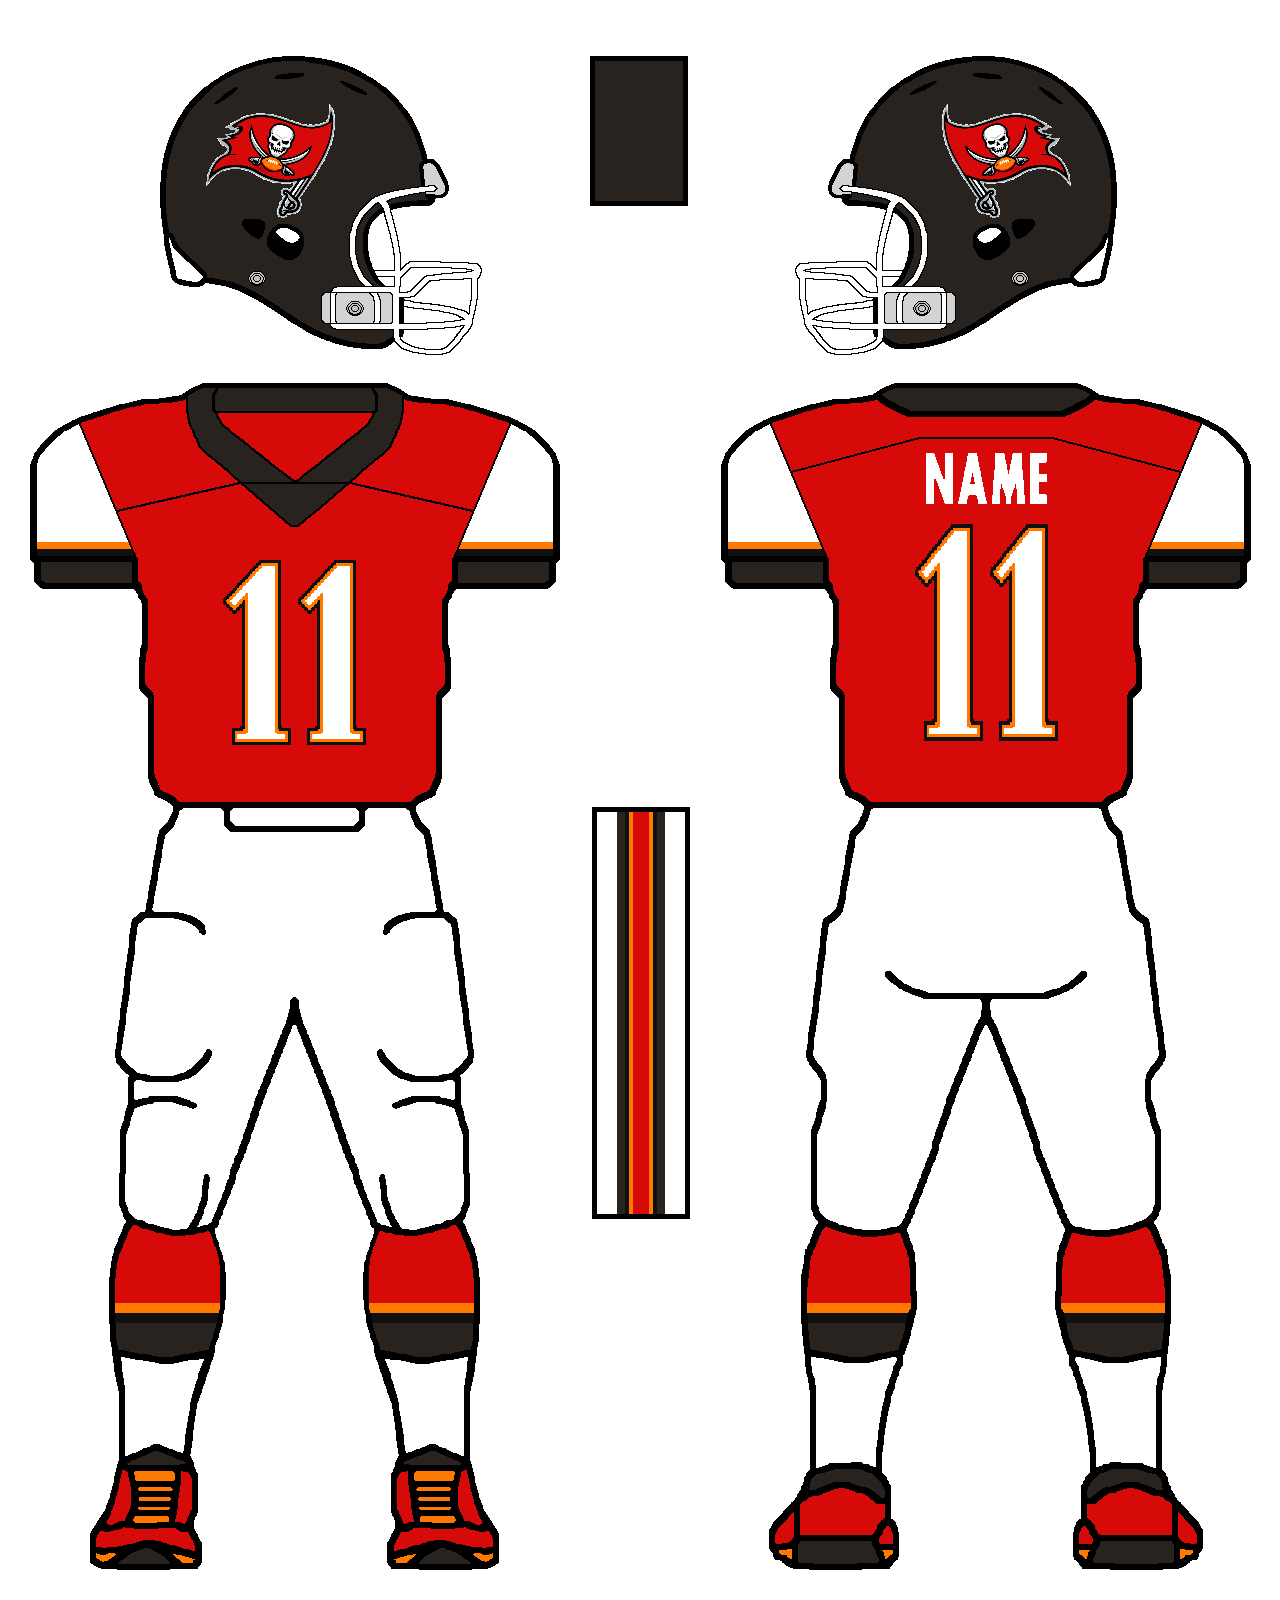 BUCCANEERS_ALTERNATE_1.png